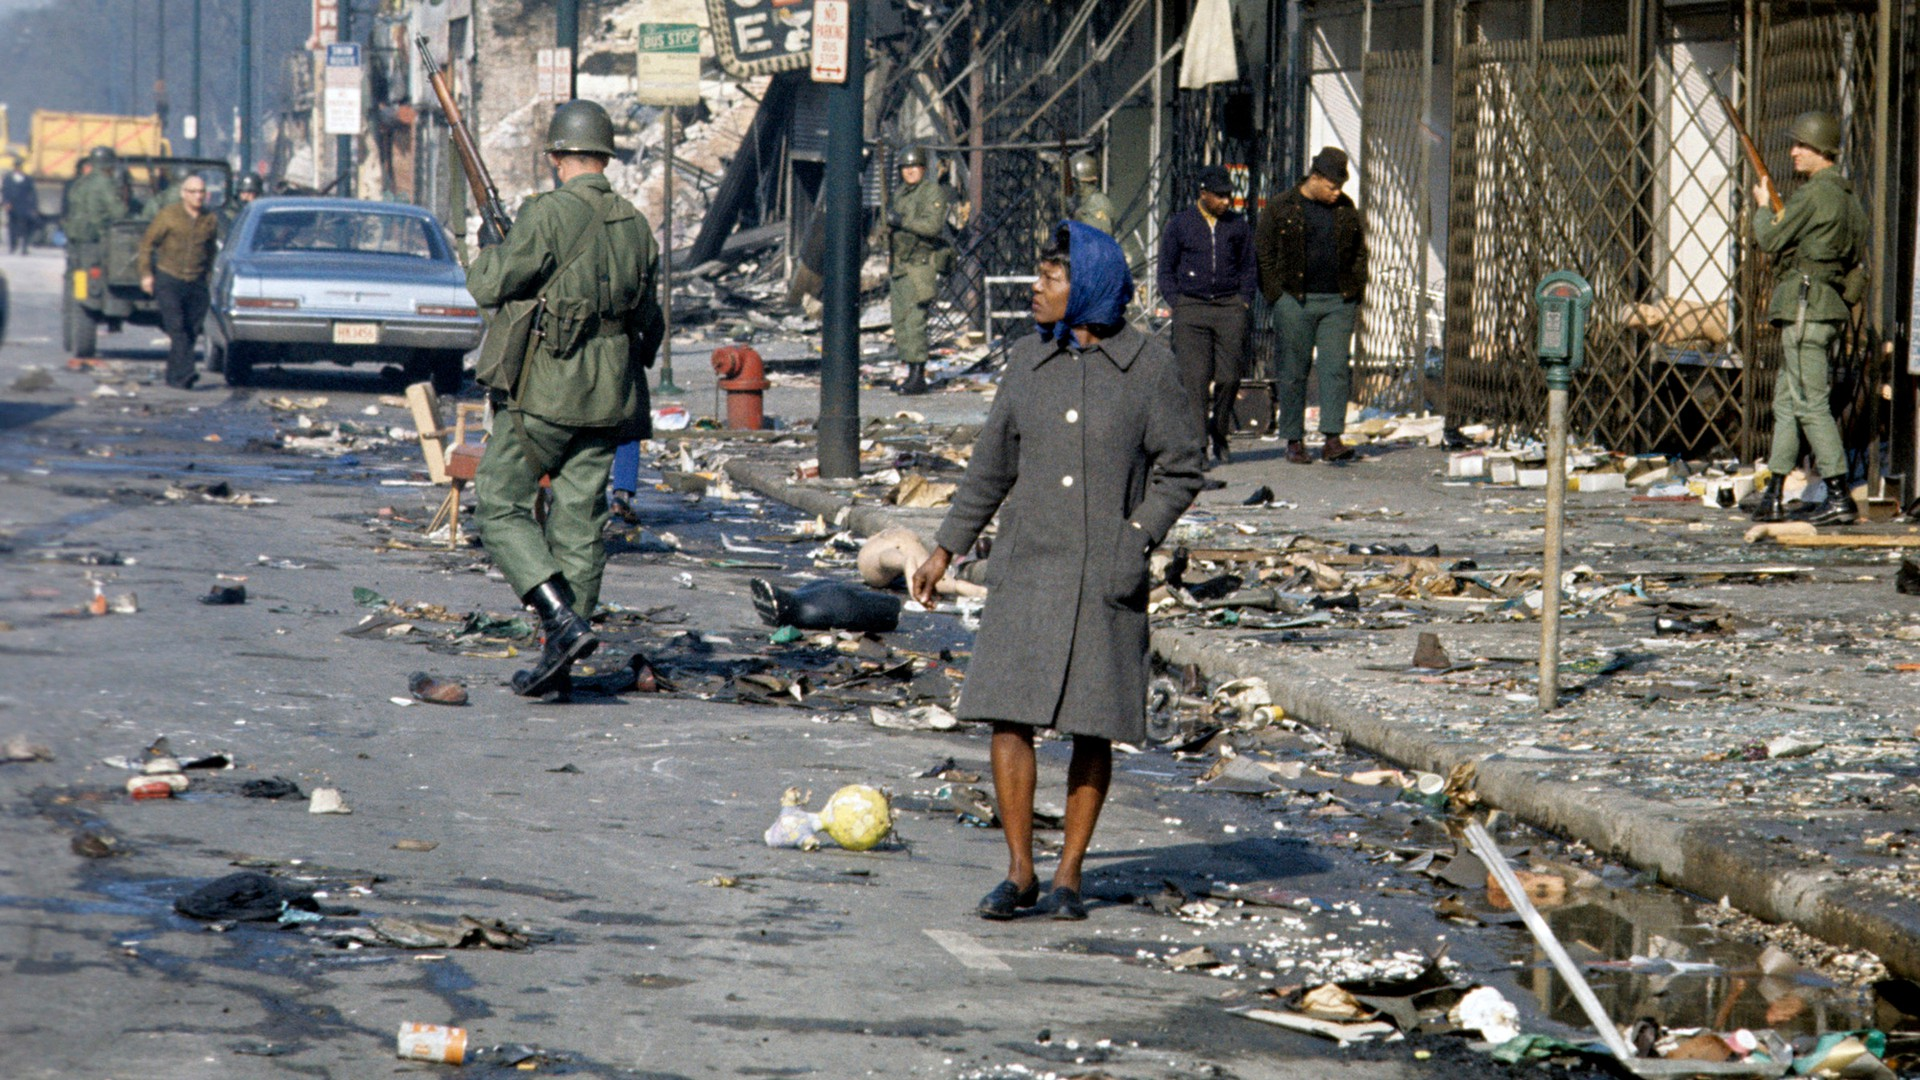 Soldiers patrol riot-torn Chicago.